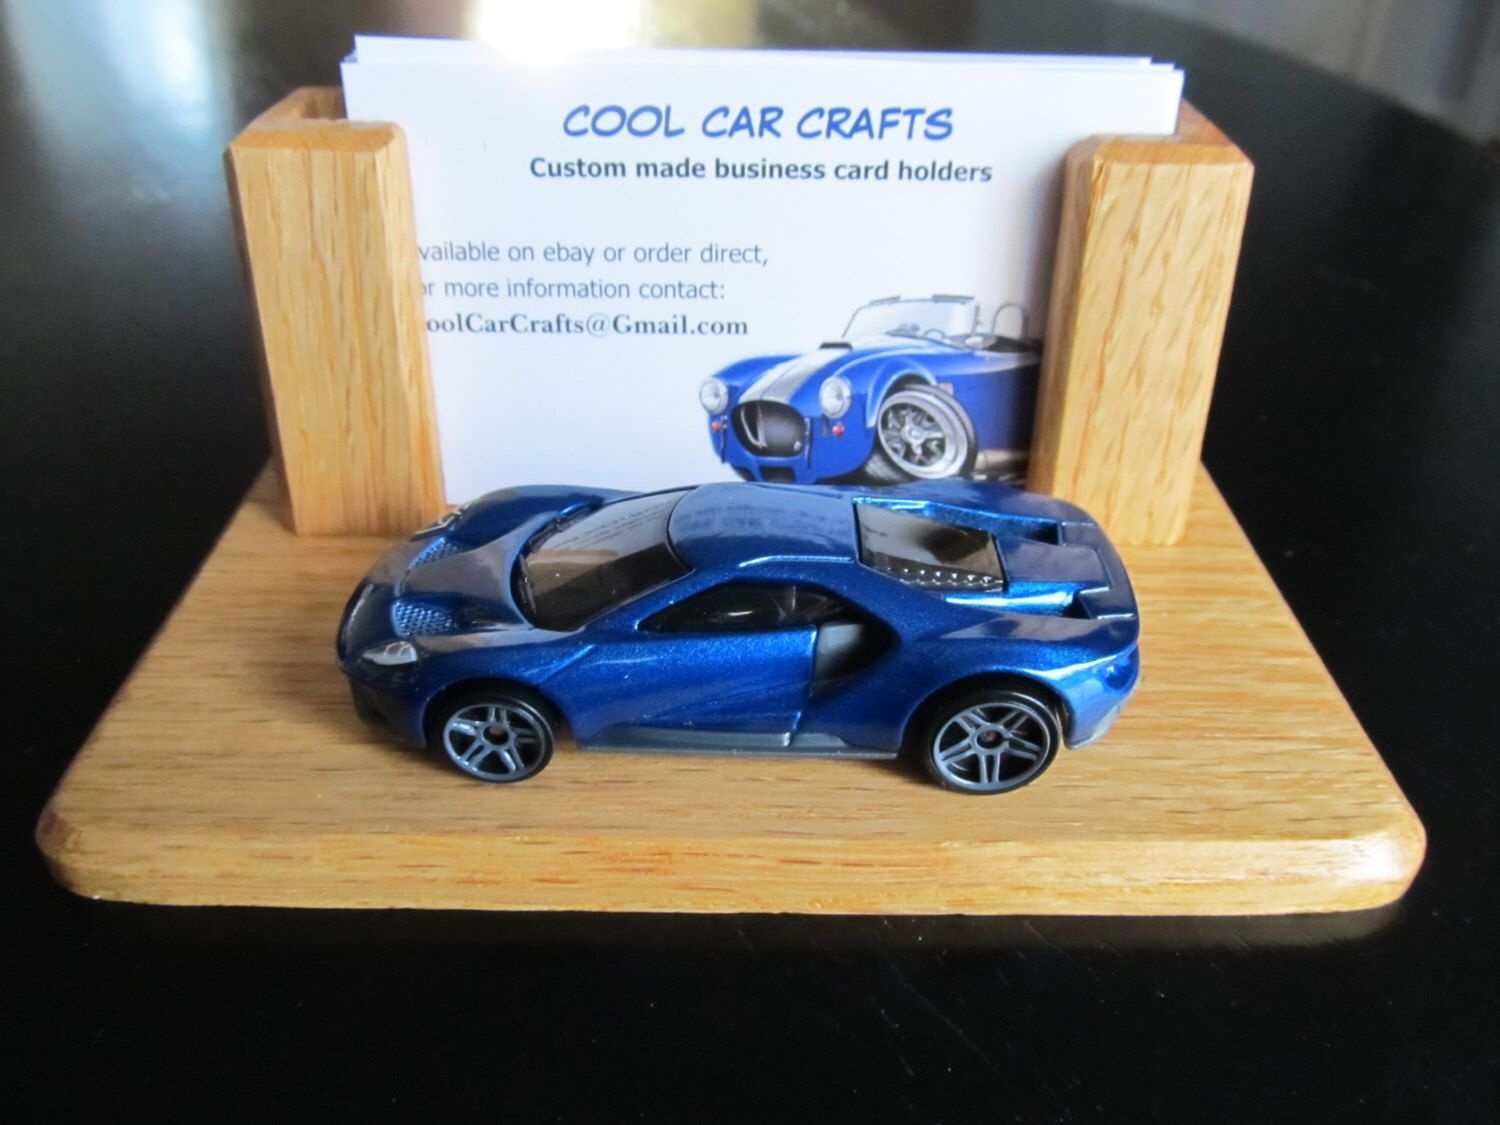 Pin by Ken Chance on Ford fan gift ideas | Business card ...